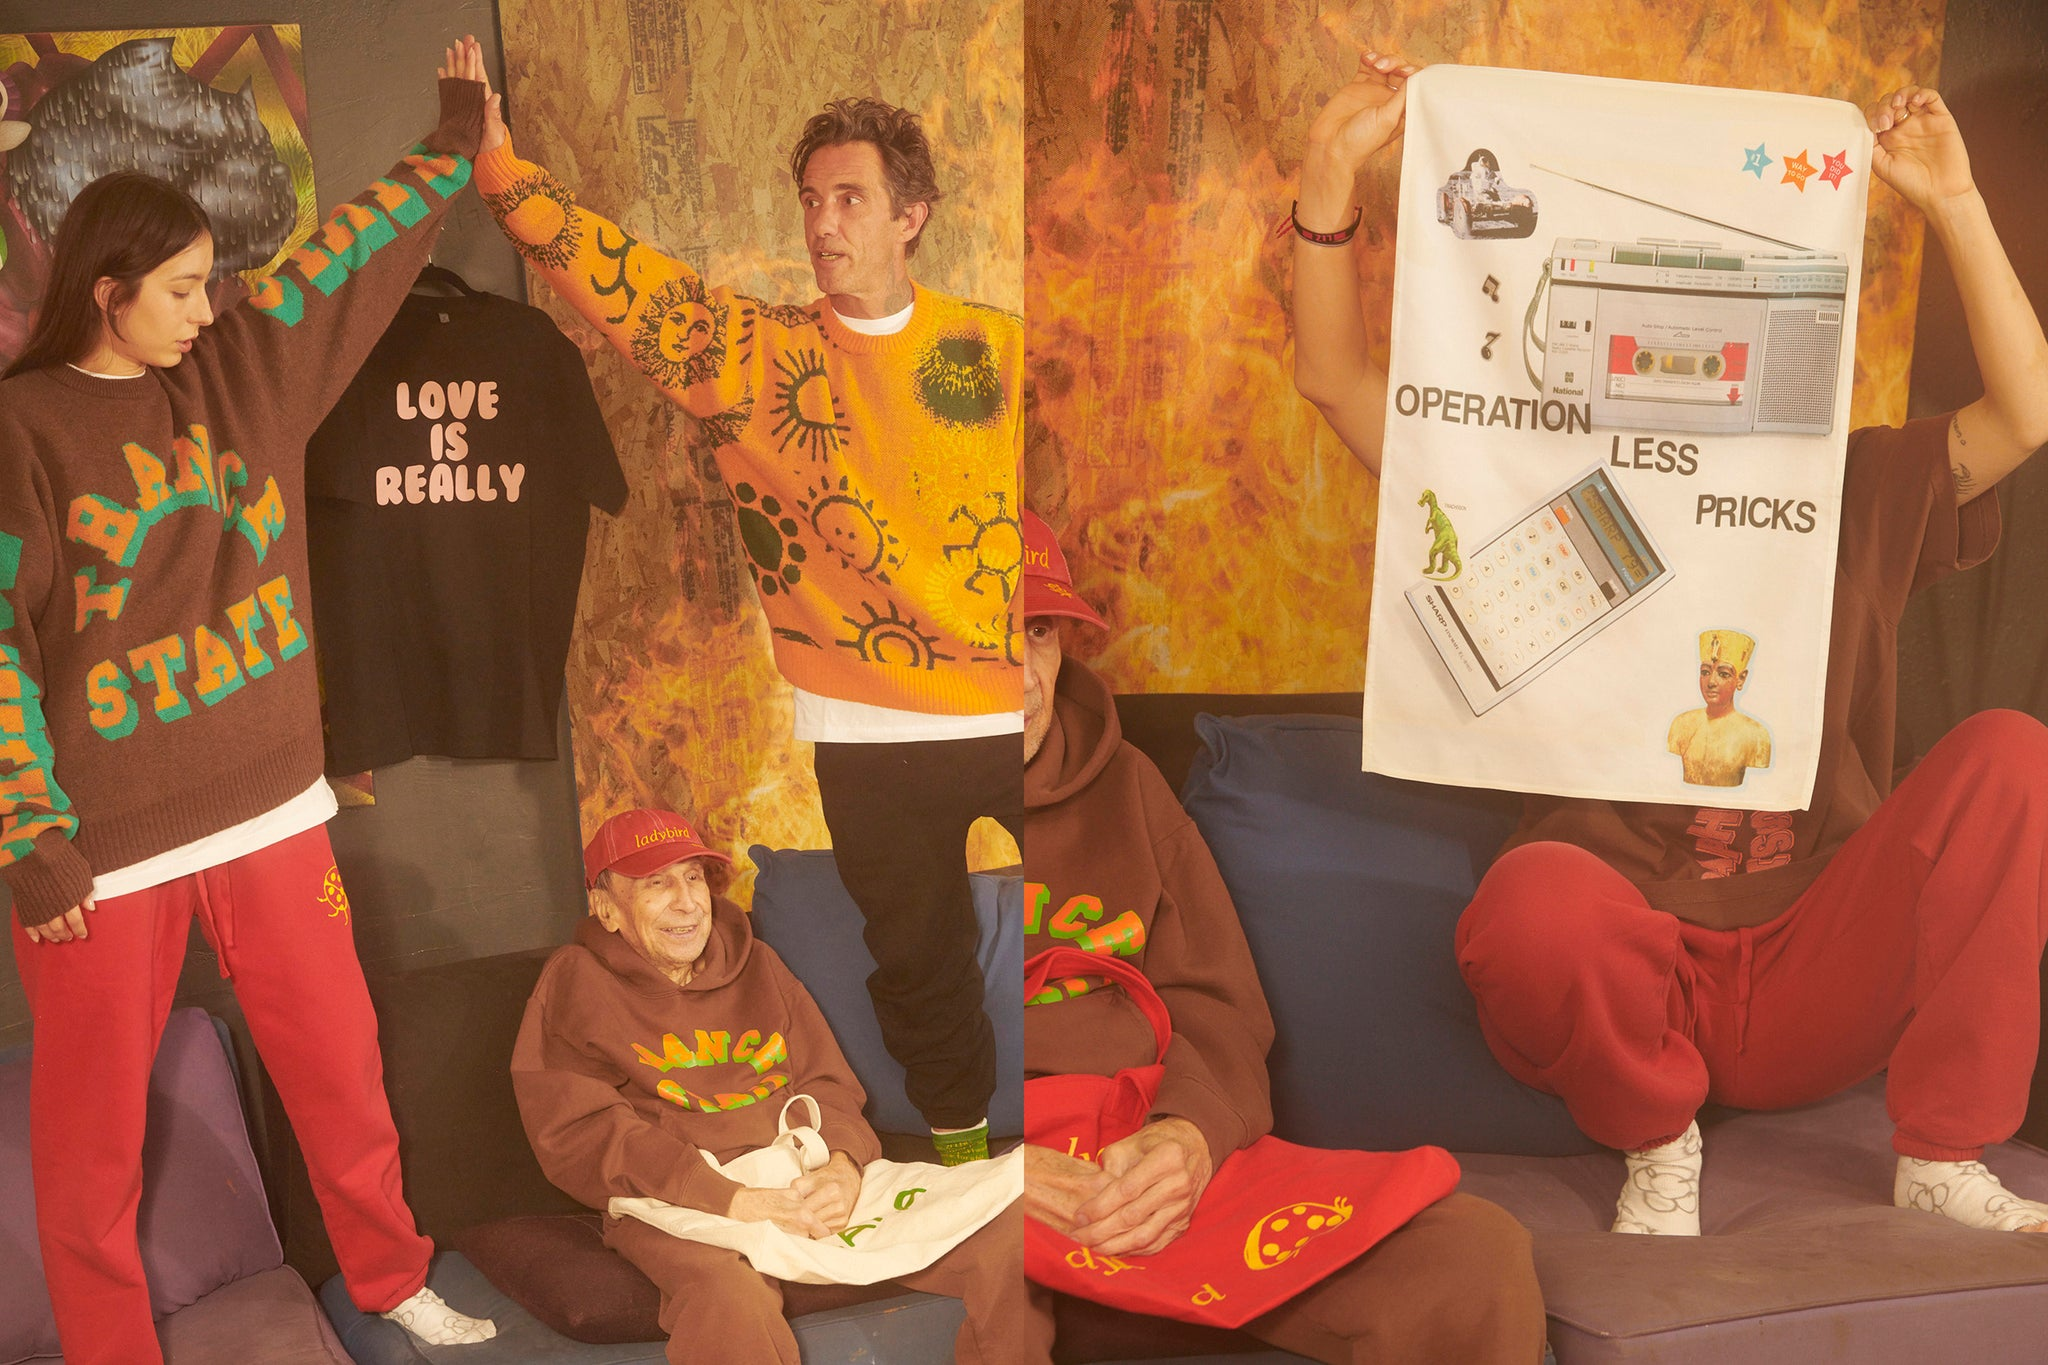 A POSITIVE MESSAGE II lookbook by Jason Nocito